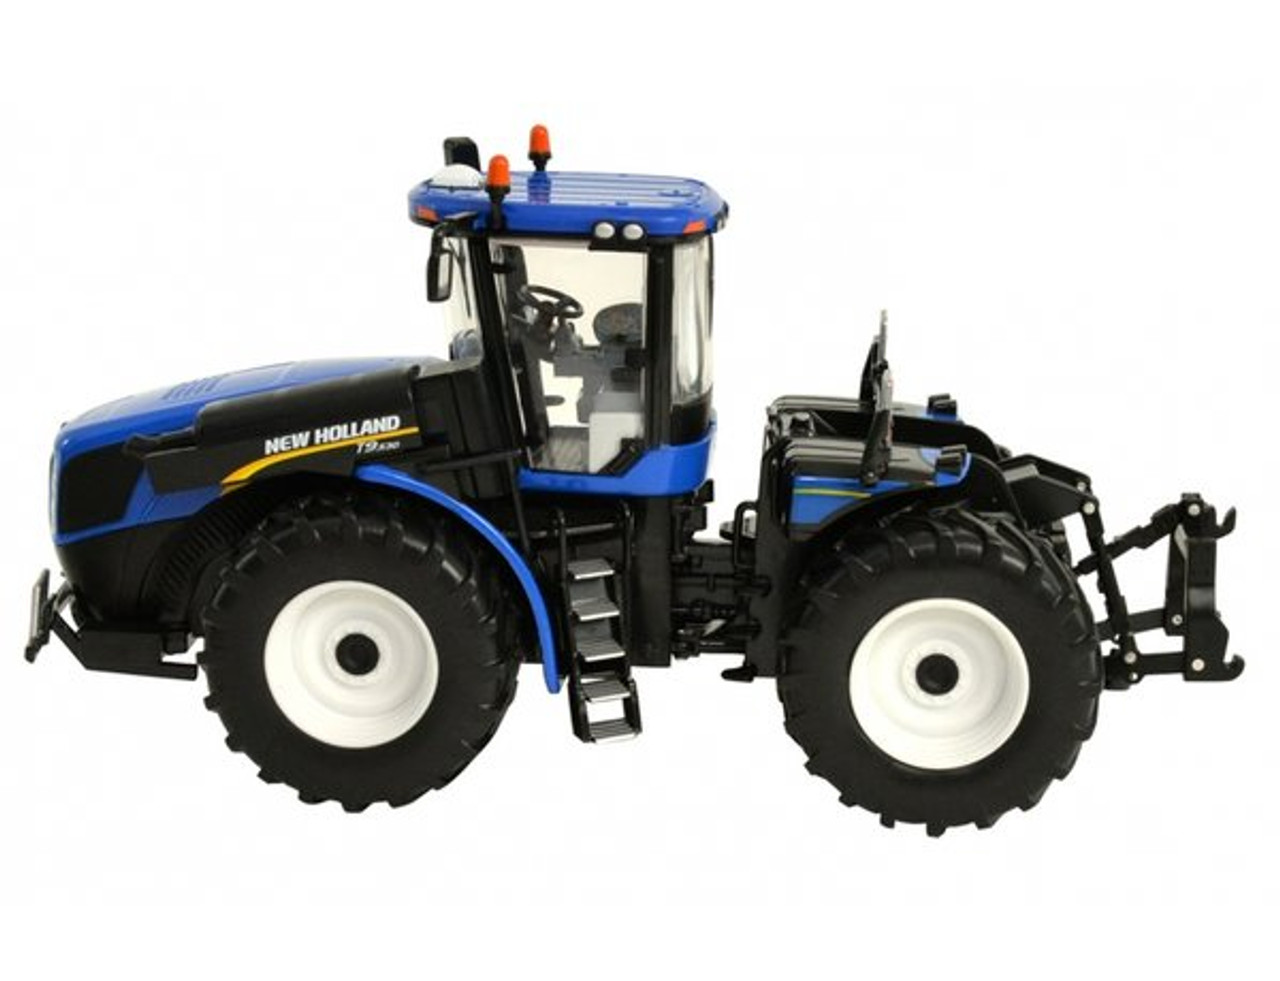 New Holland T9530 Tractor 43193